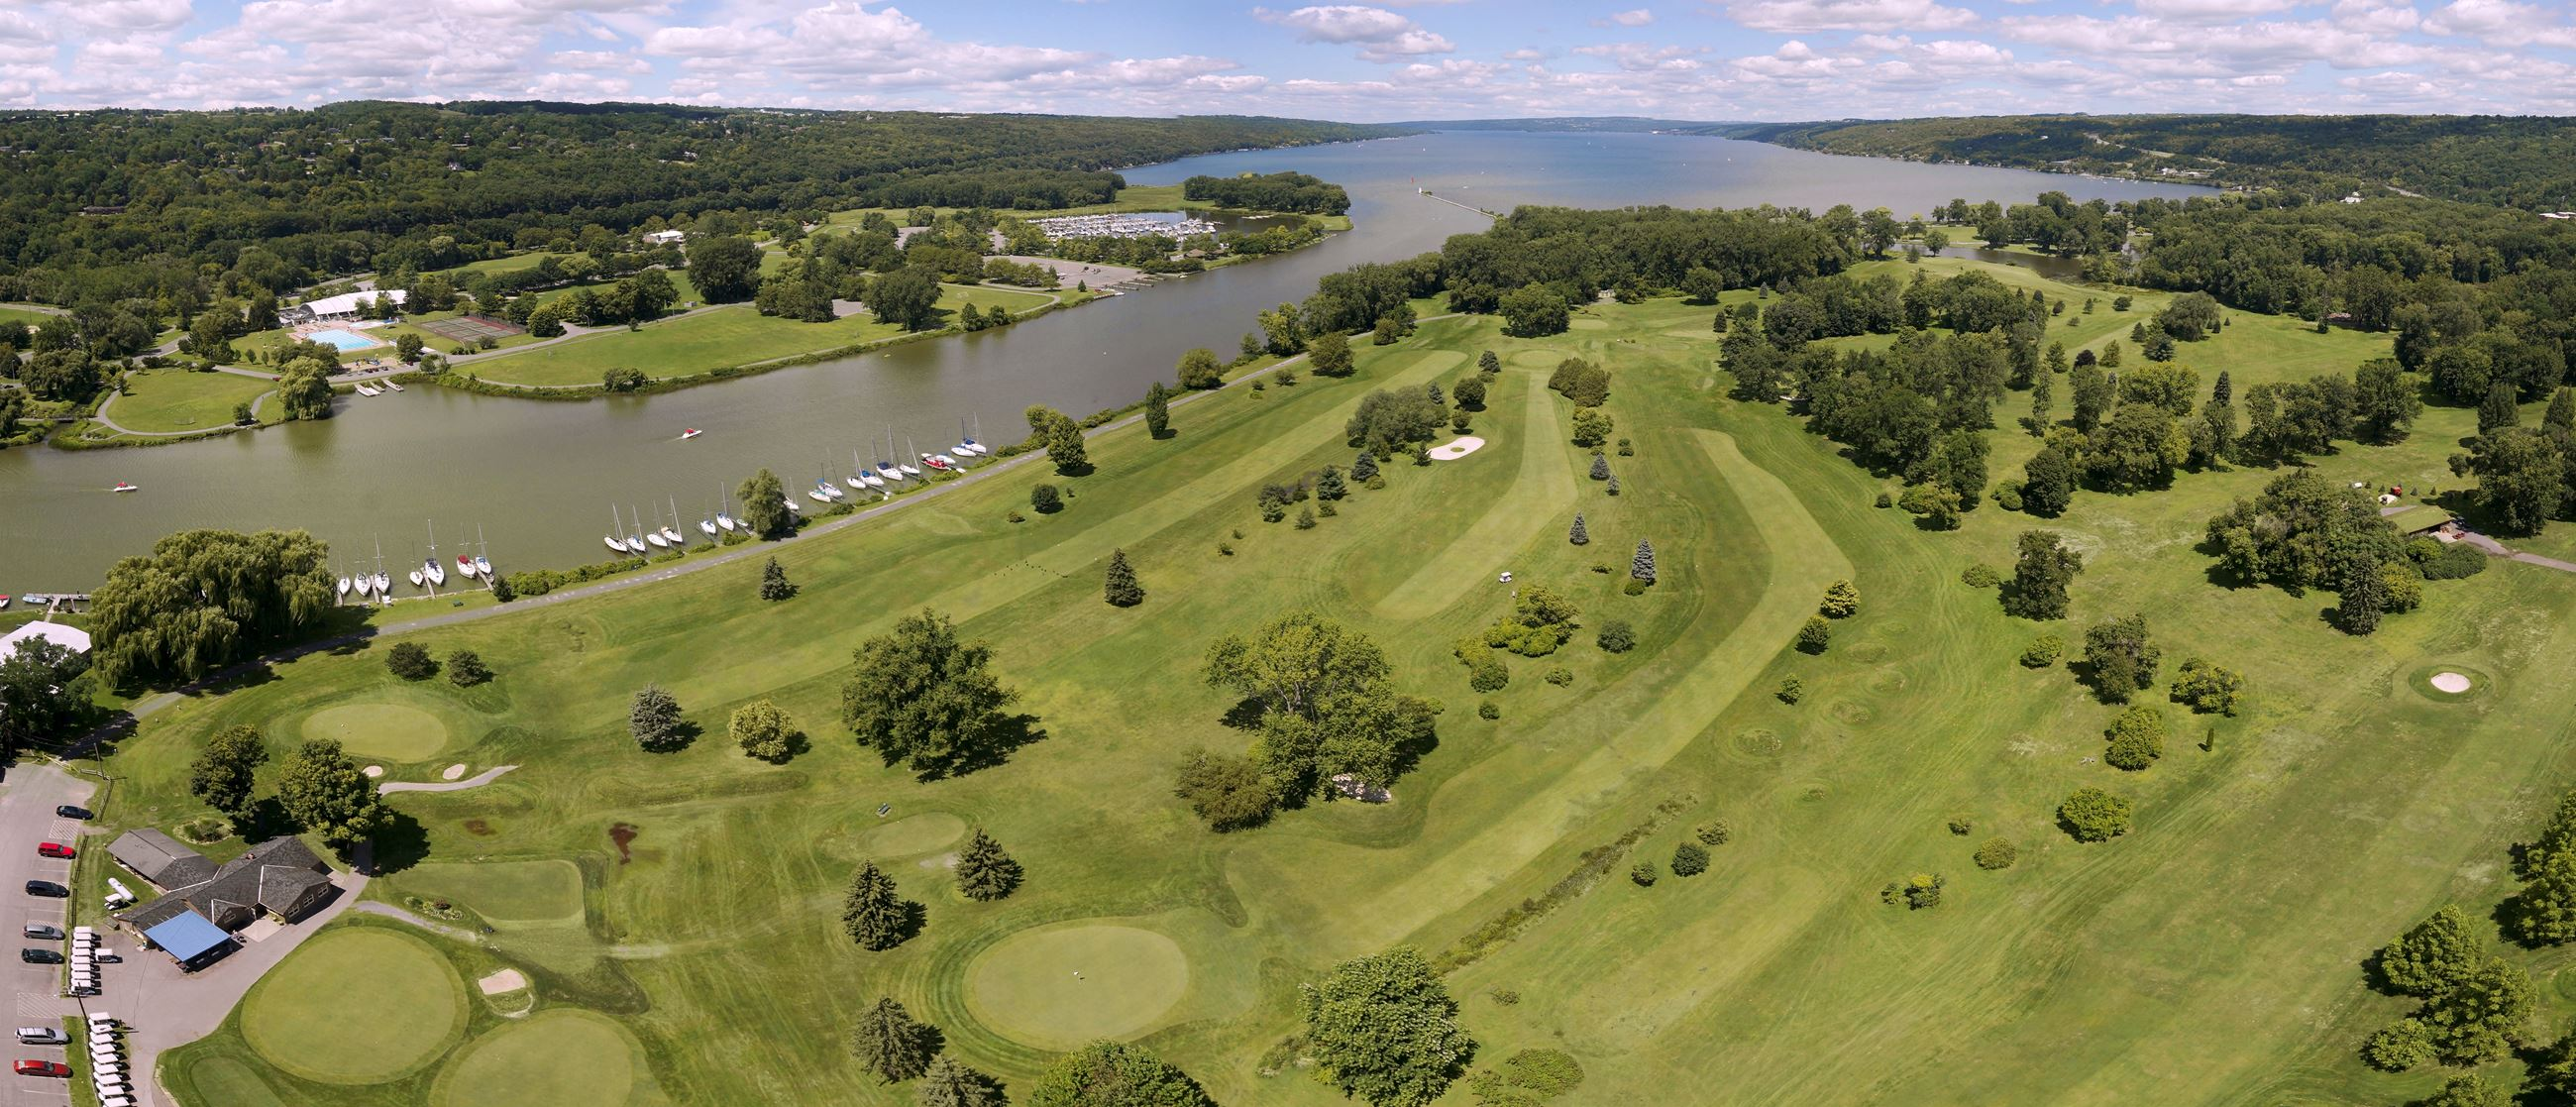 Newman Municipal Golf Course - Aerial View